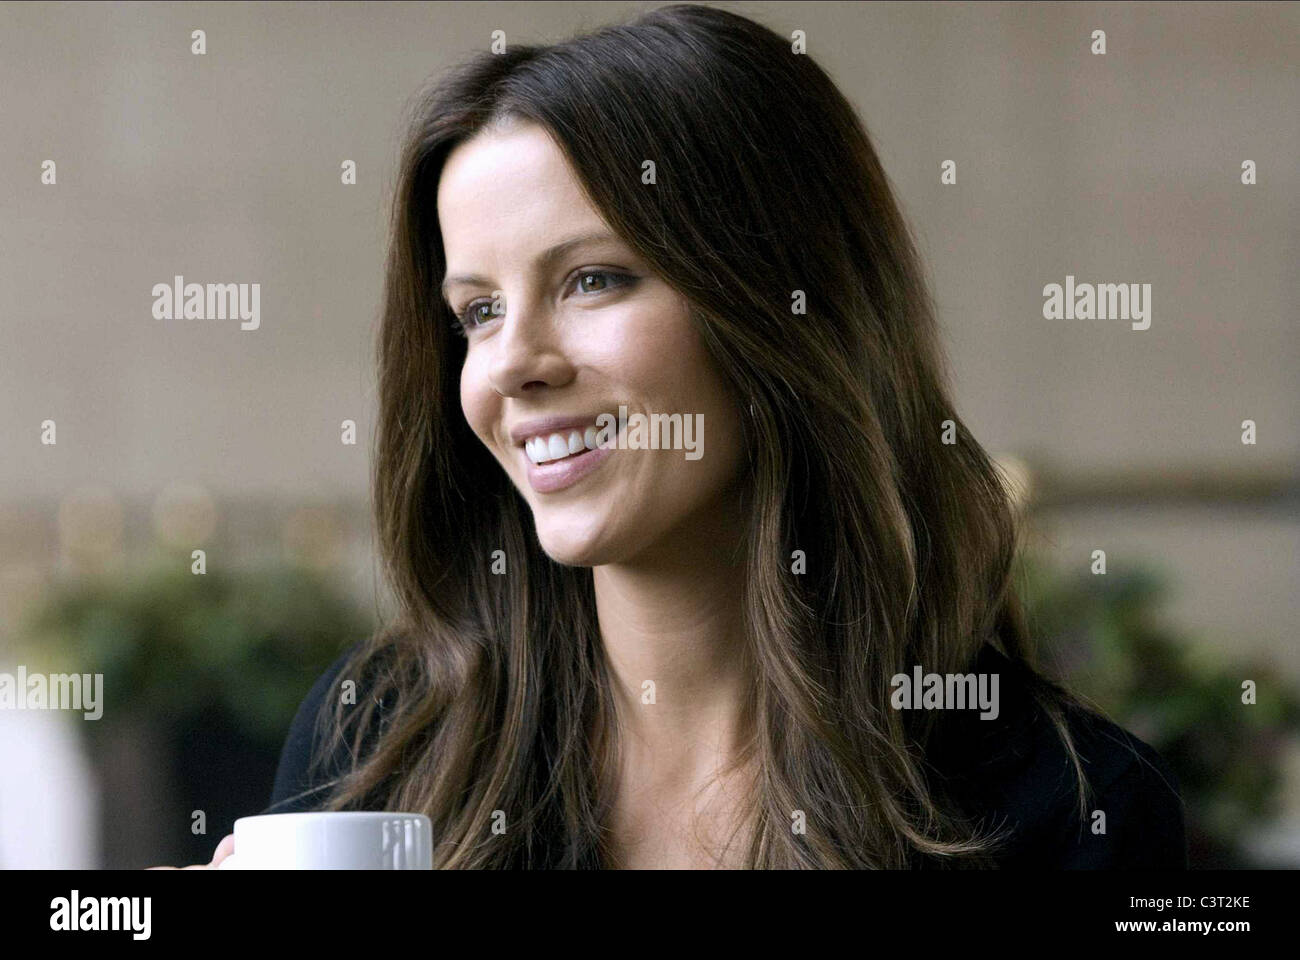 KATE BECKINSALE EVERYBODY'S FINE (2009) - Stock Image